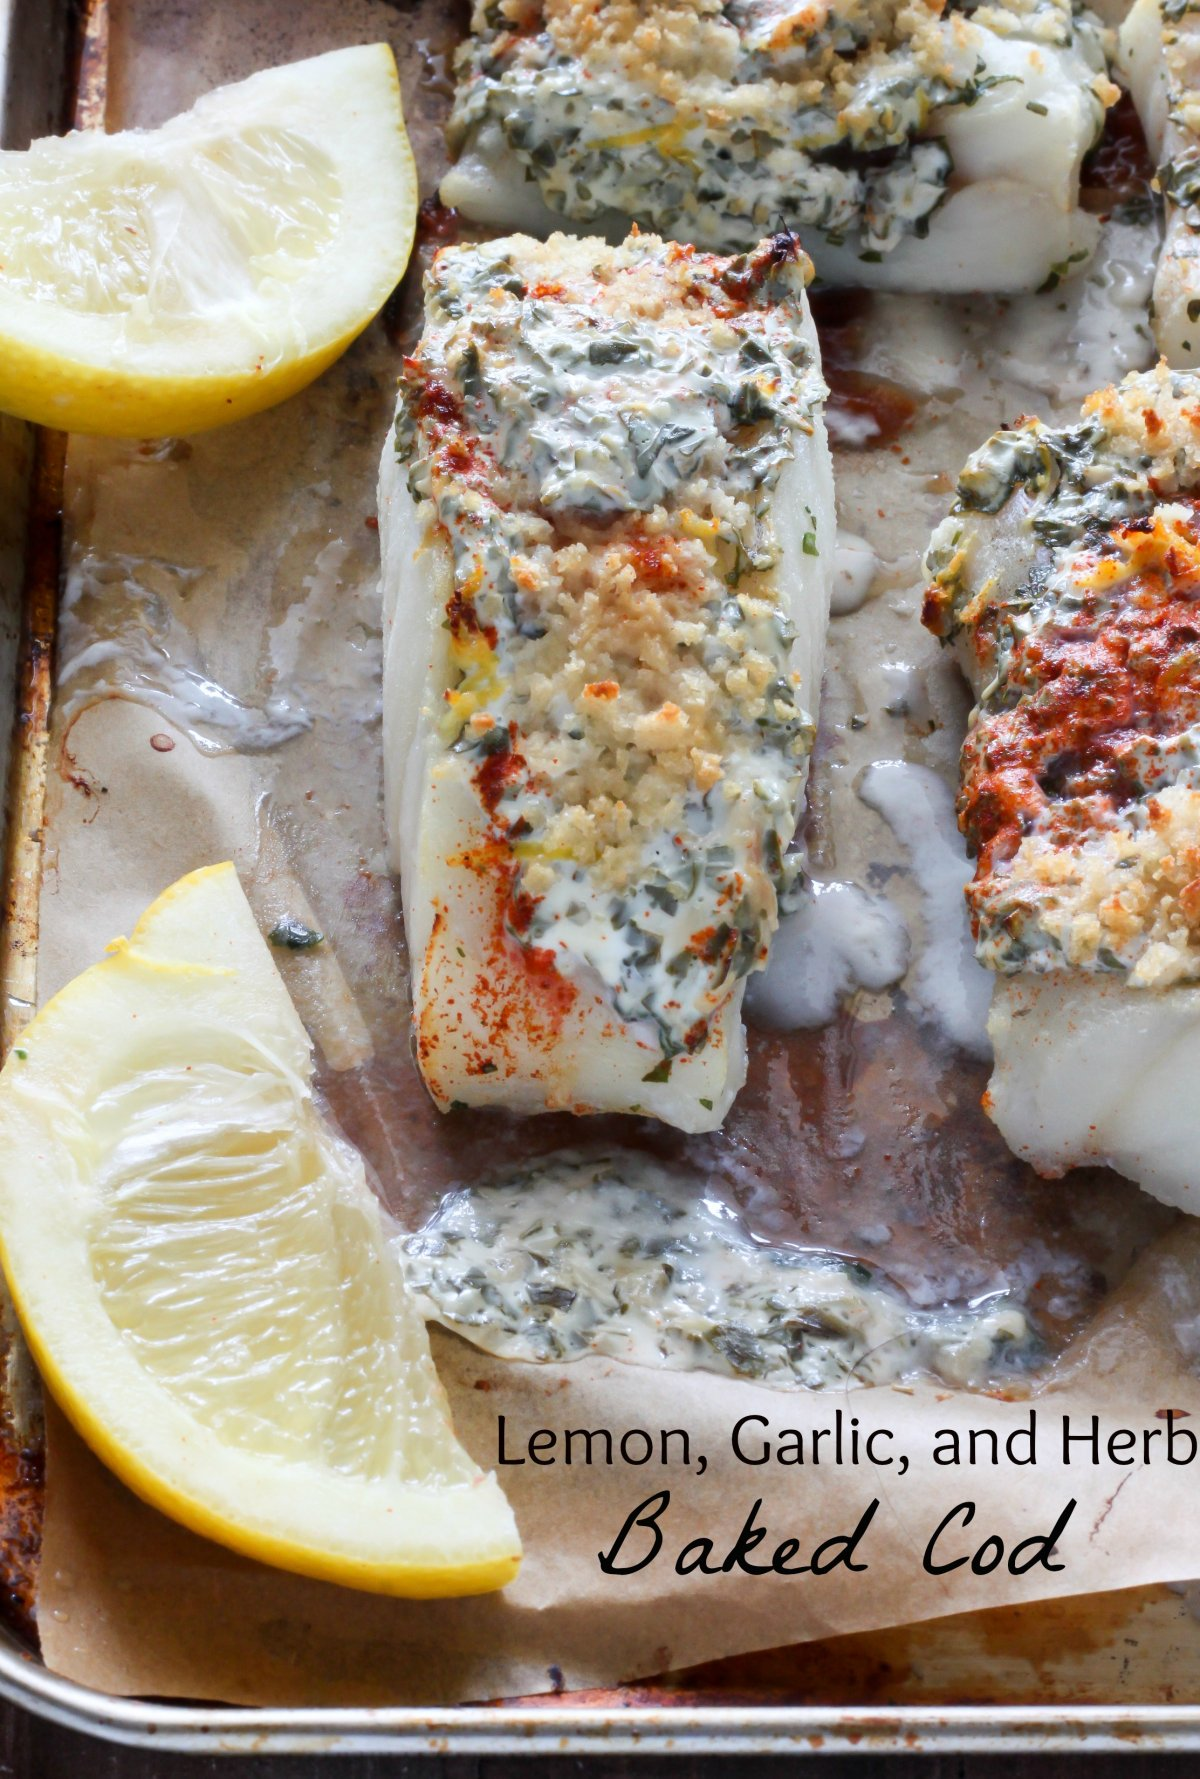 20-Minute Lemon, Garlic, and Herb Baked Cod